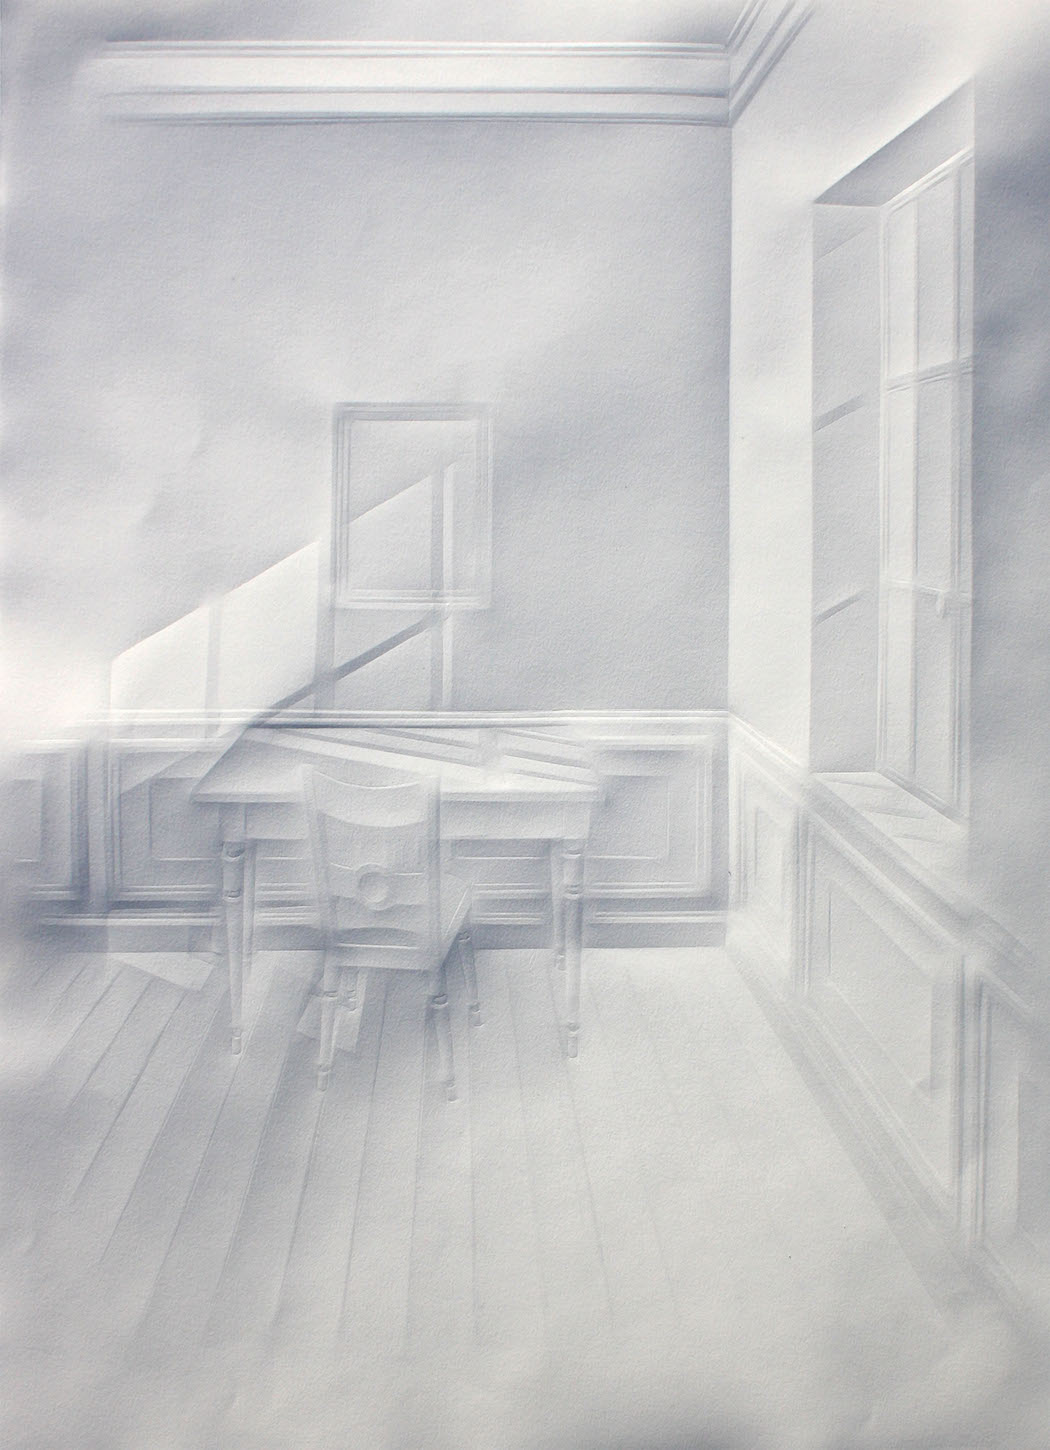 simonschubert(light on desk2), 2015, 50cm x 35cm